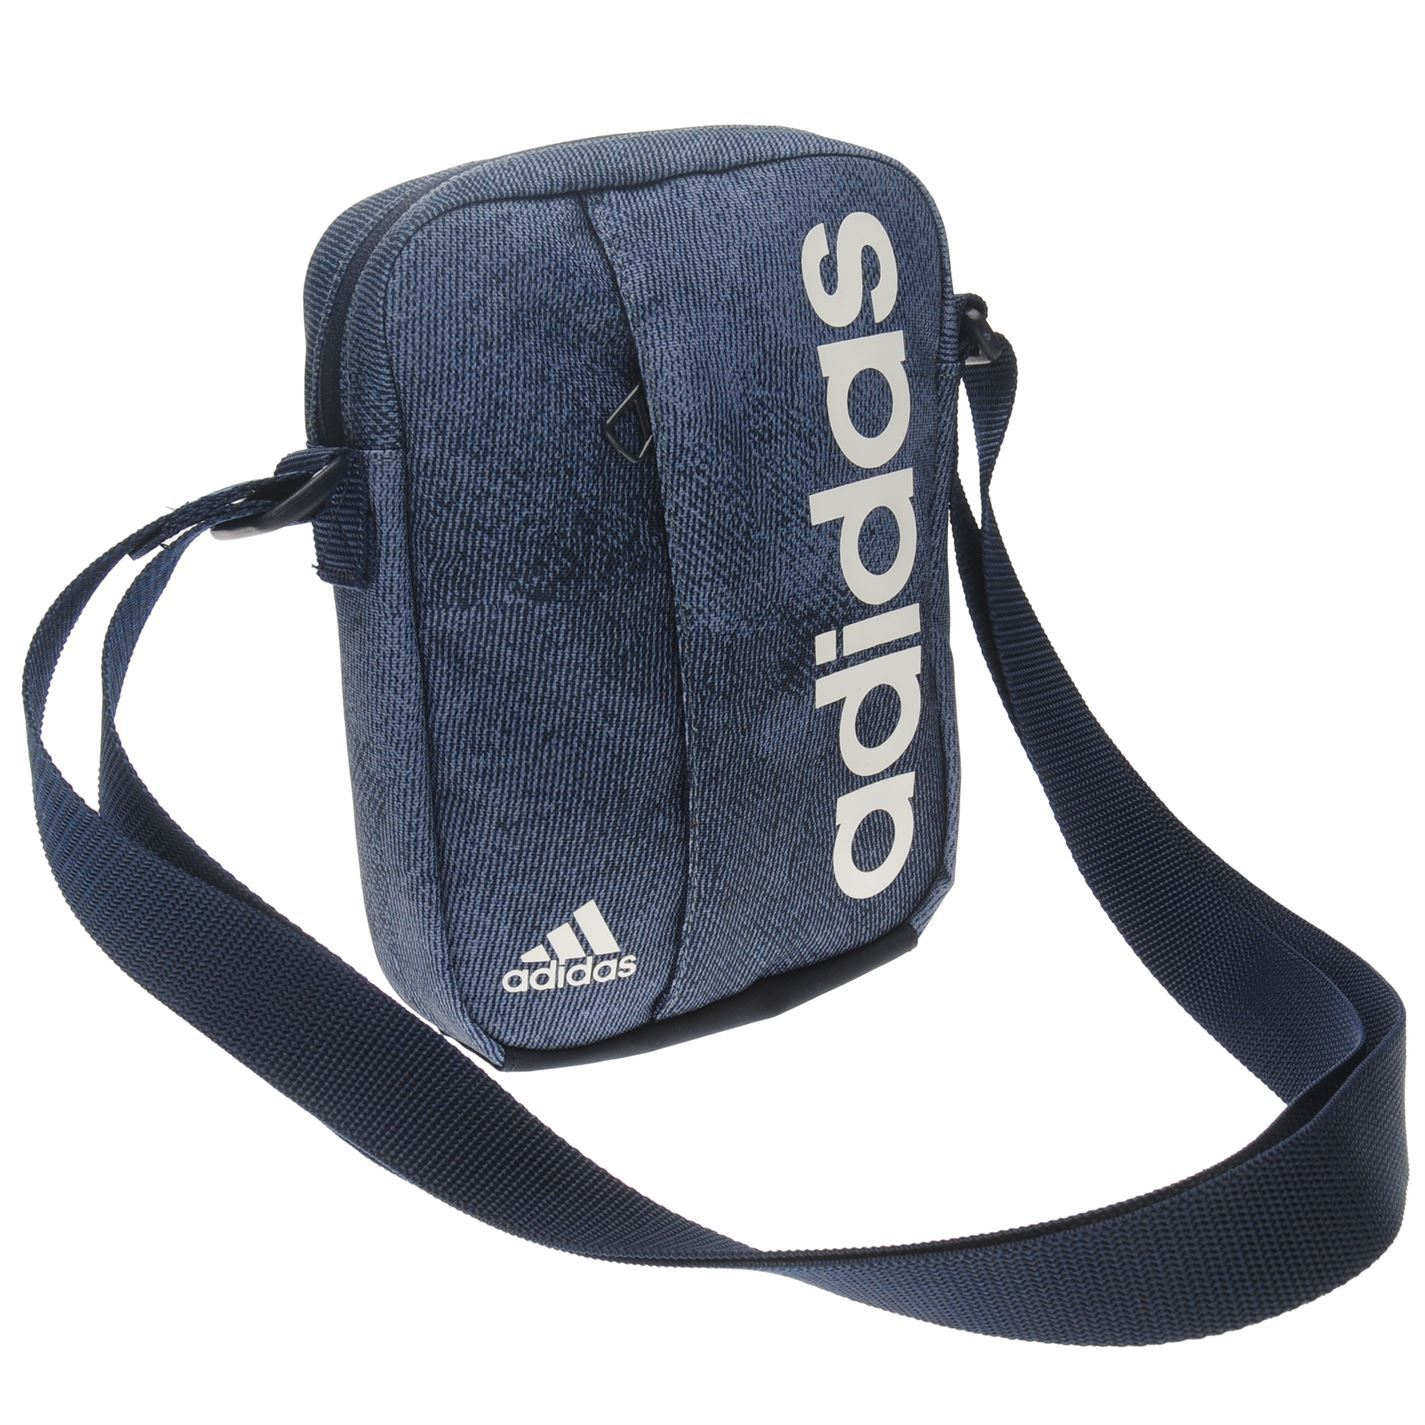 adidas Small Item Gadget Bag Shoulder Organiser Bag  6d13949cee15e